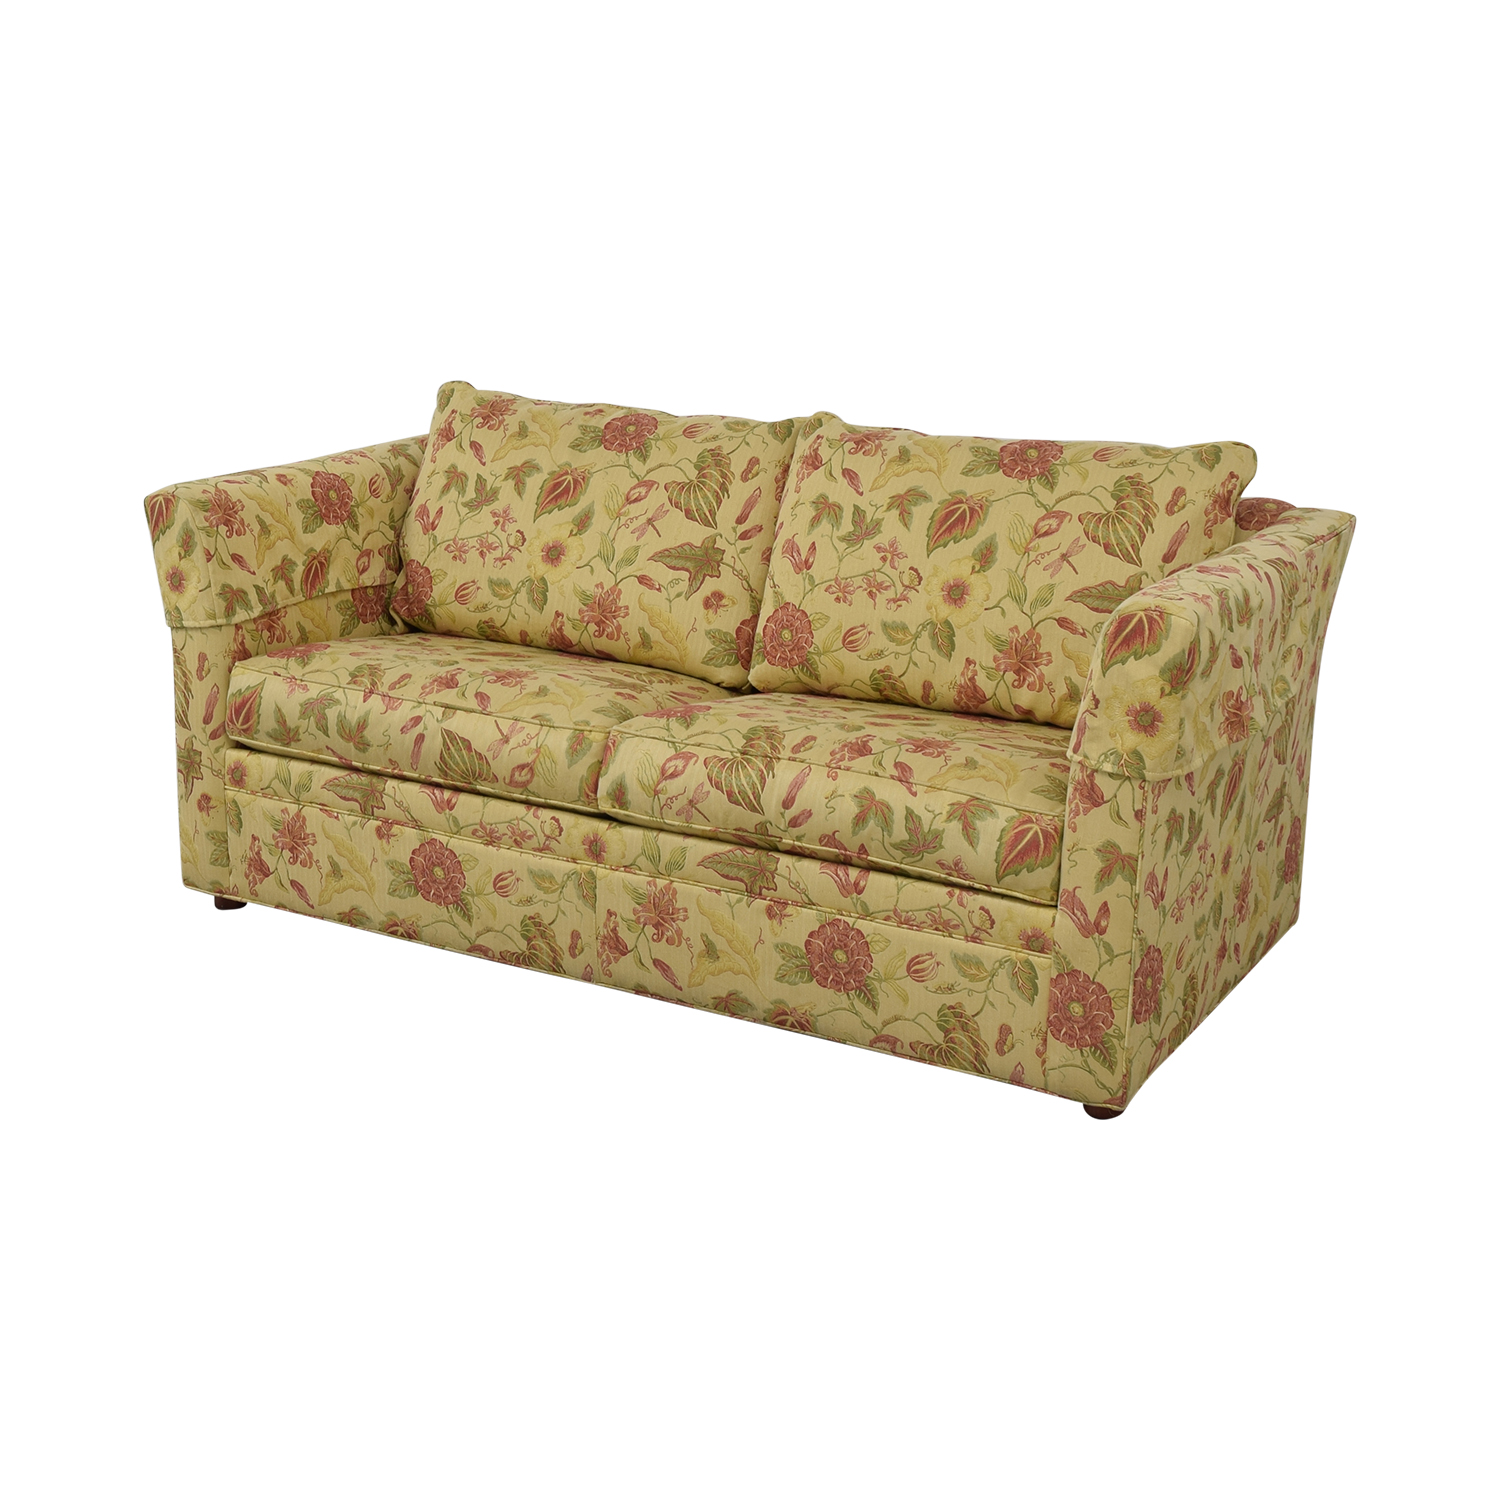 Taylor King Taylor King Classic Sleeper Sofa Multi- Colored